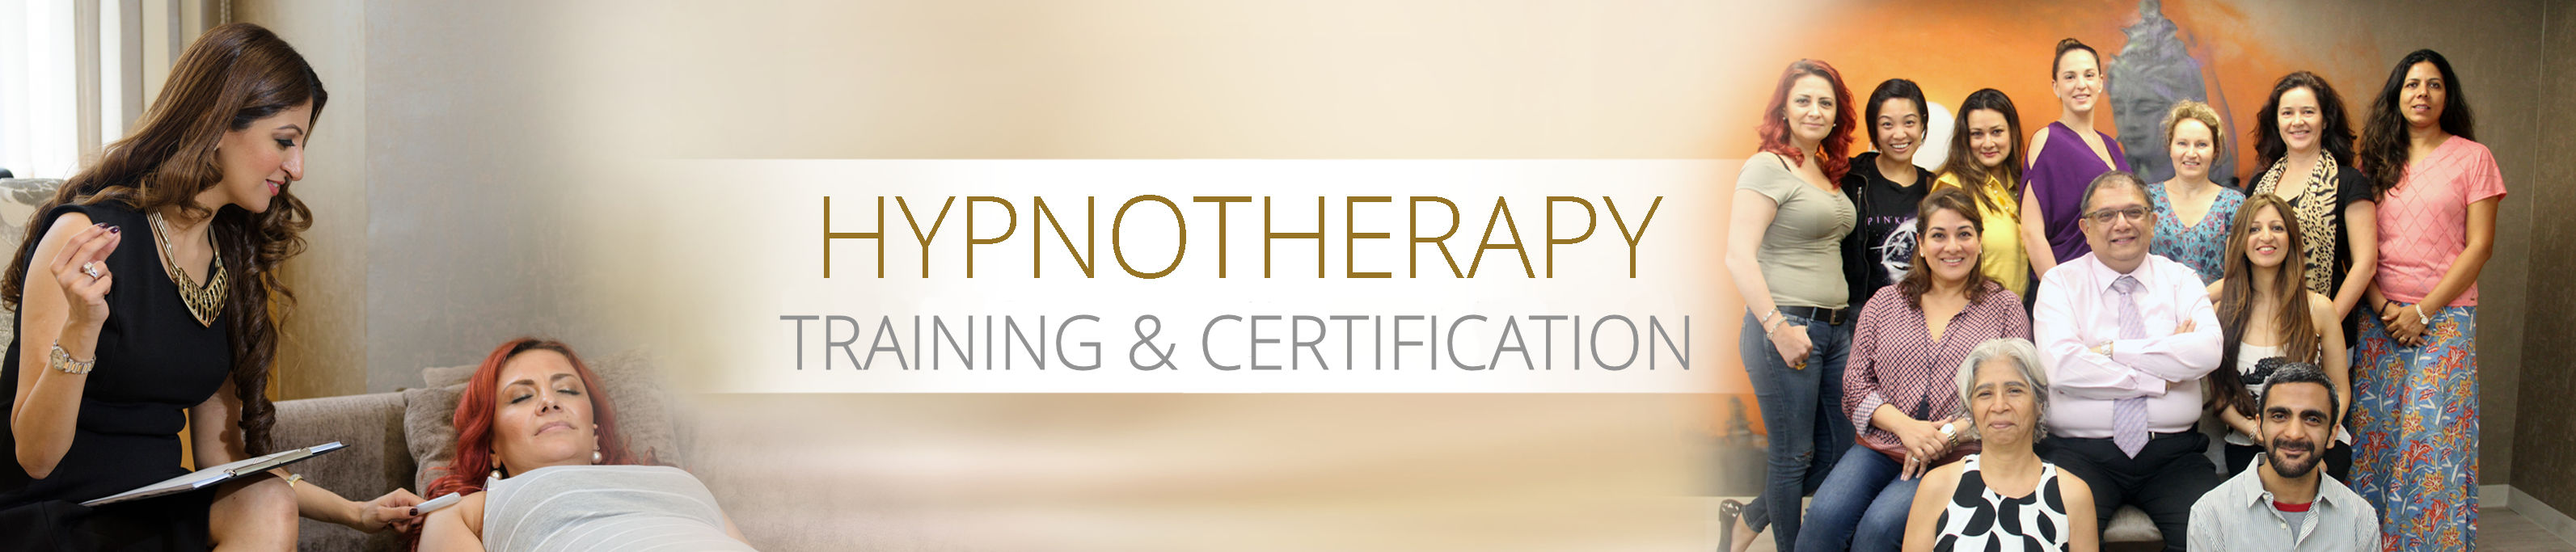 Certified Hypnotherapists Hong Kong, Hypnotherapy, All ...